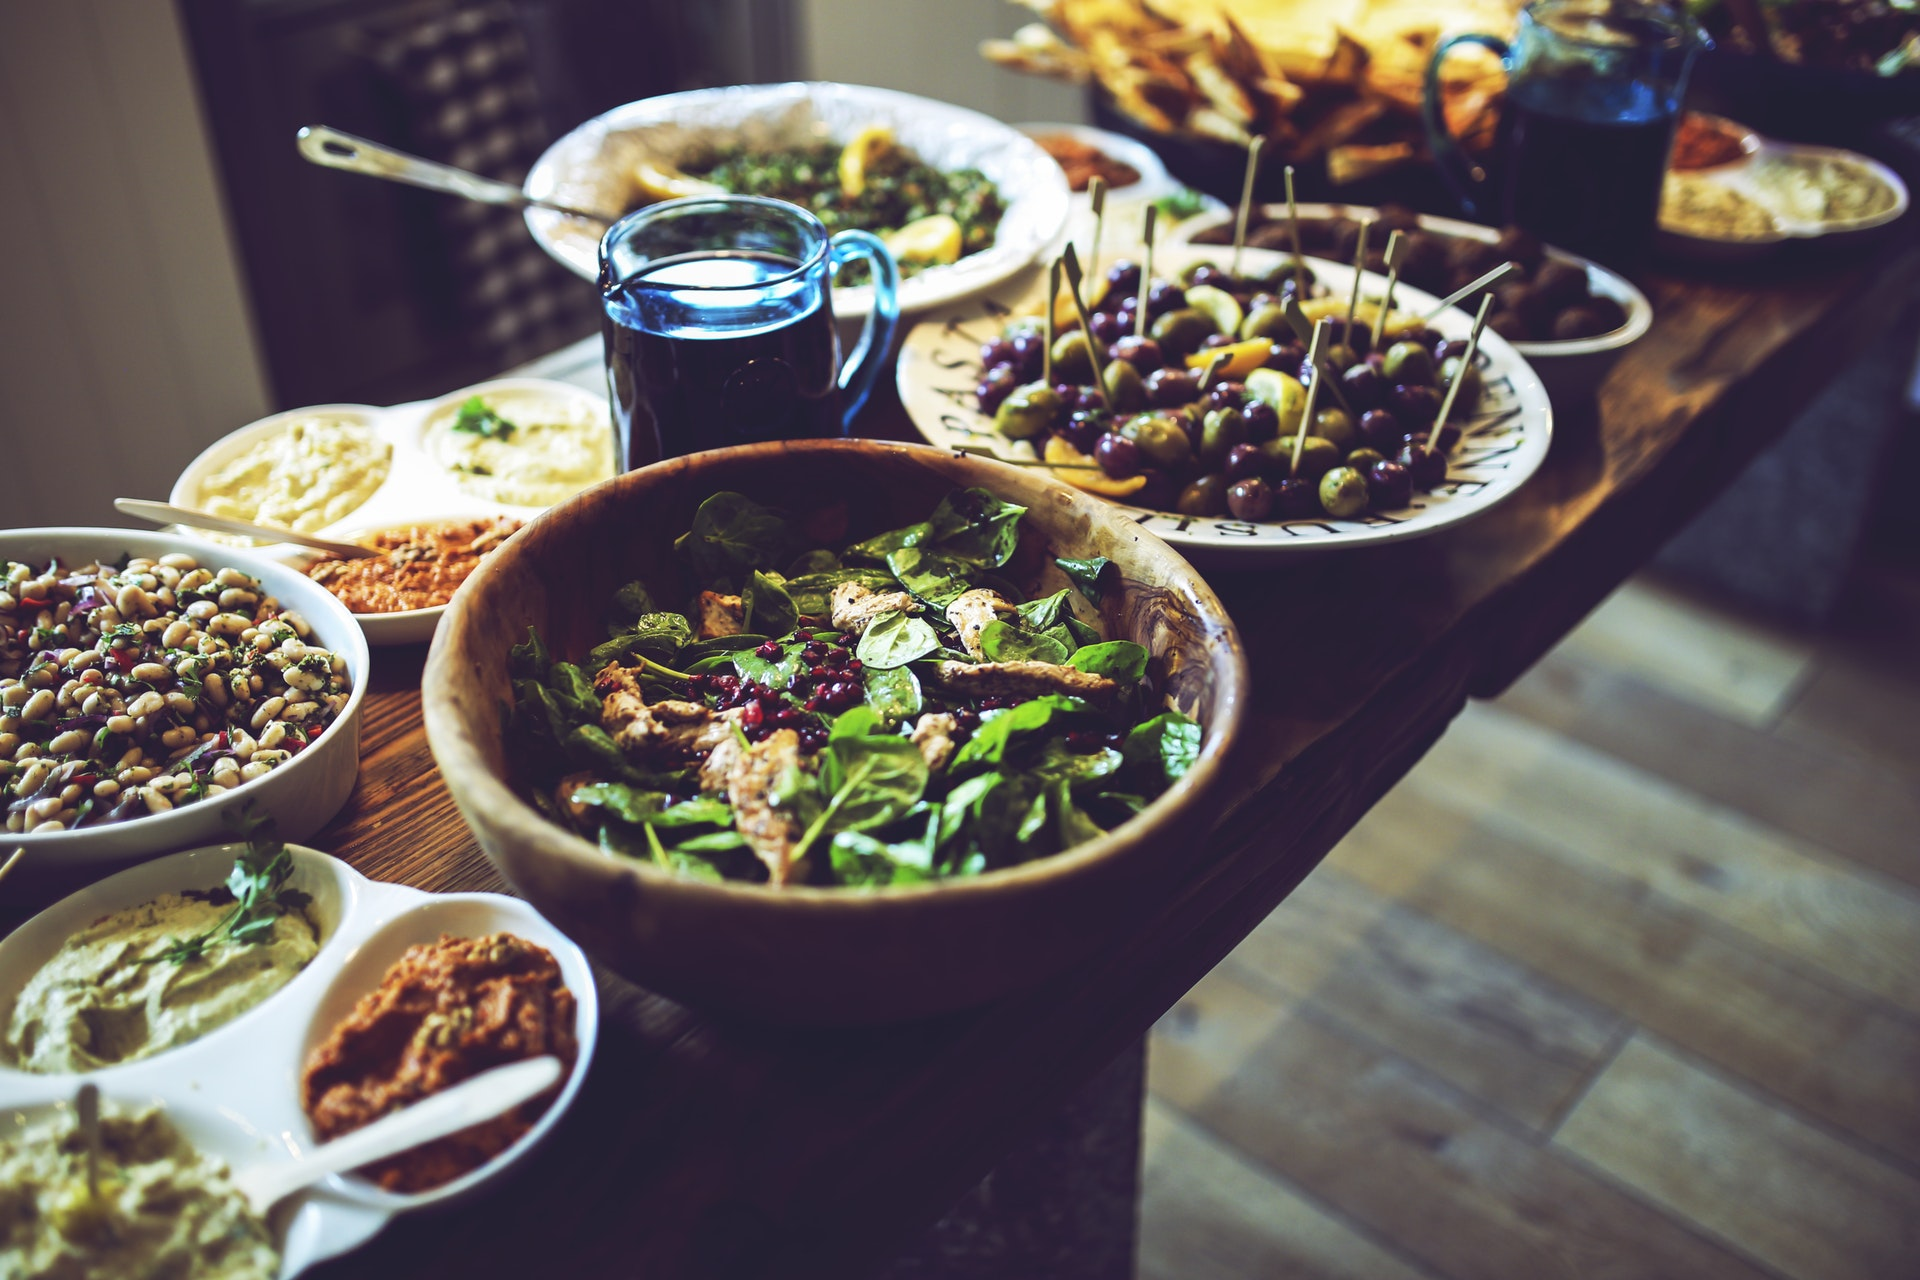 There are so many delicious dishes on offer, and there will be plenty of leftovers too.